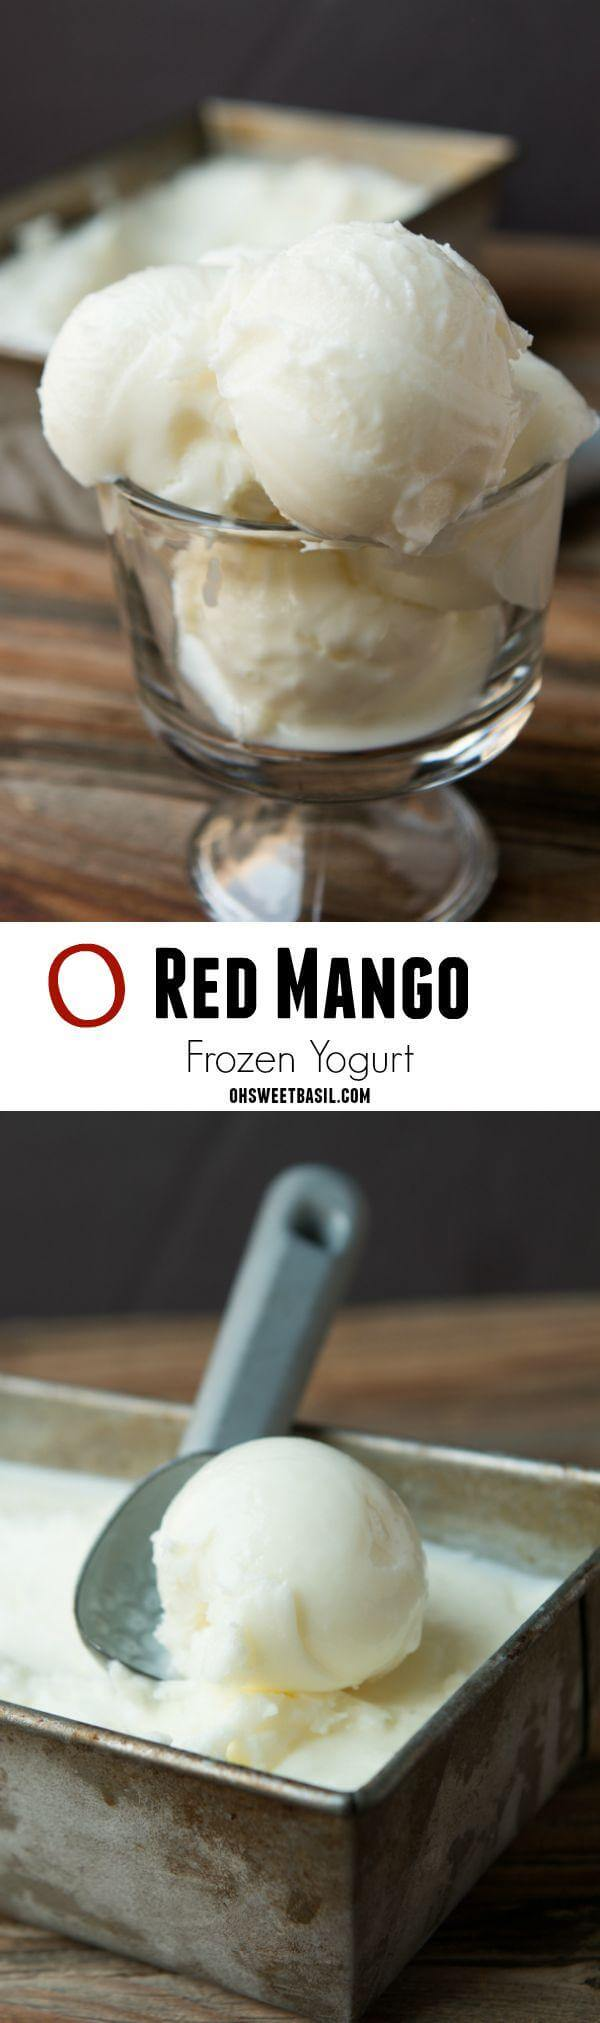 It's only 2 ingredients and tastes just like Red Mango Frozen Yogurt! Ohsweetbasil.com